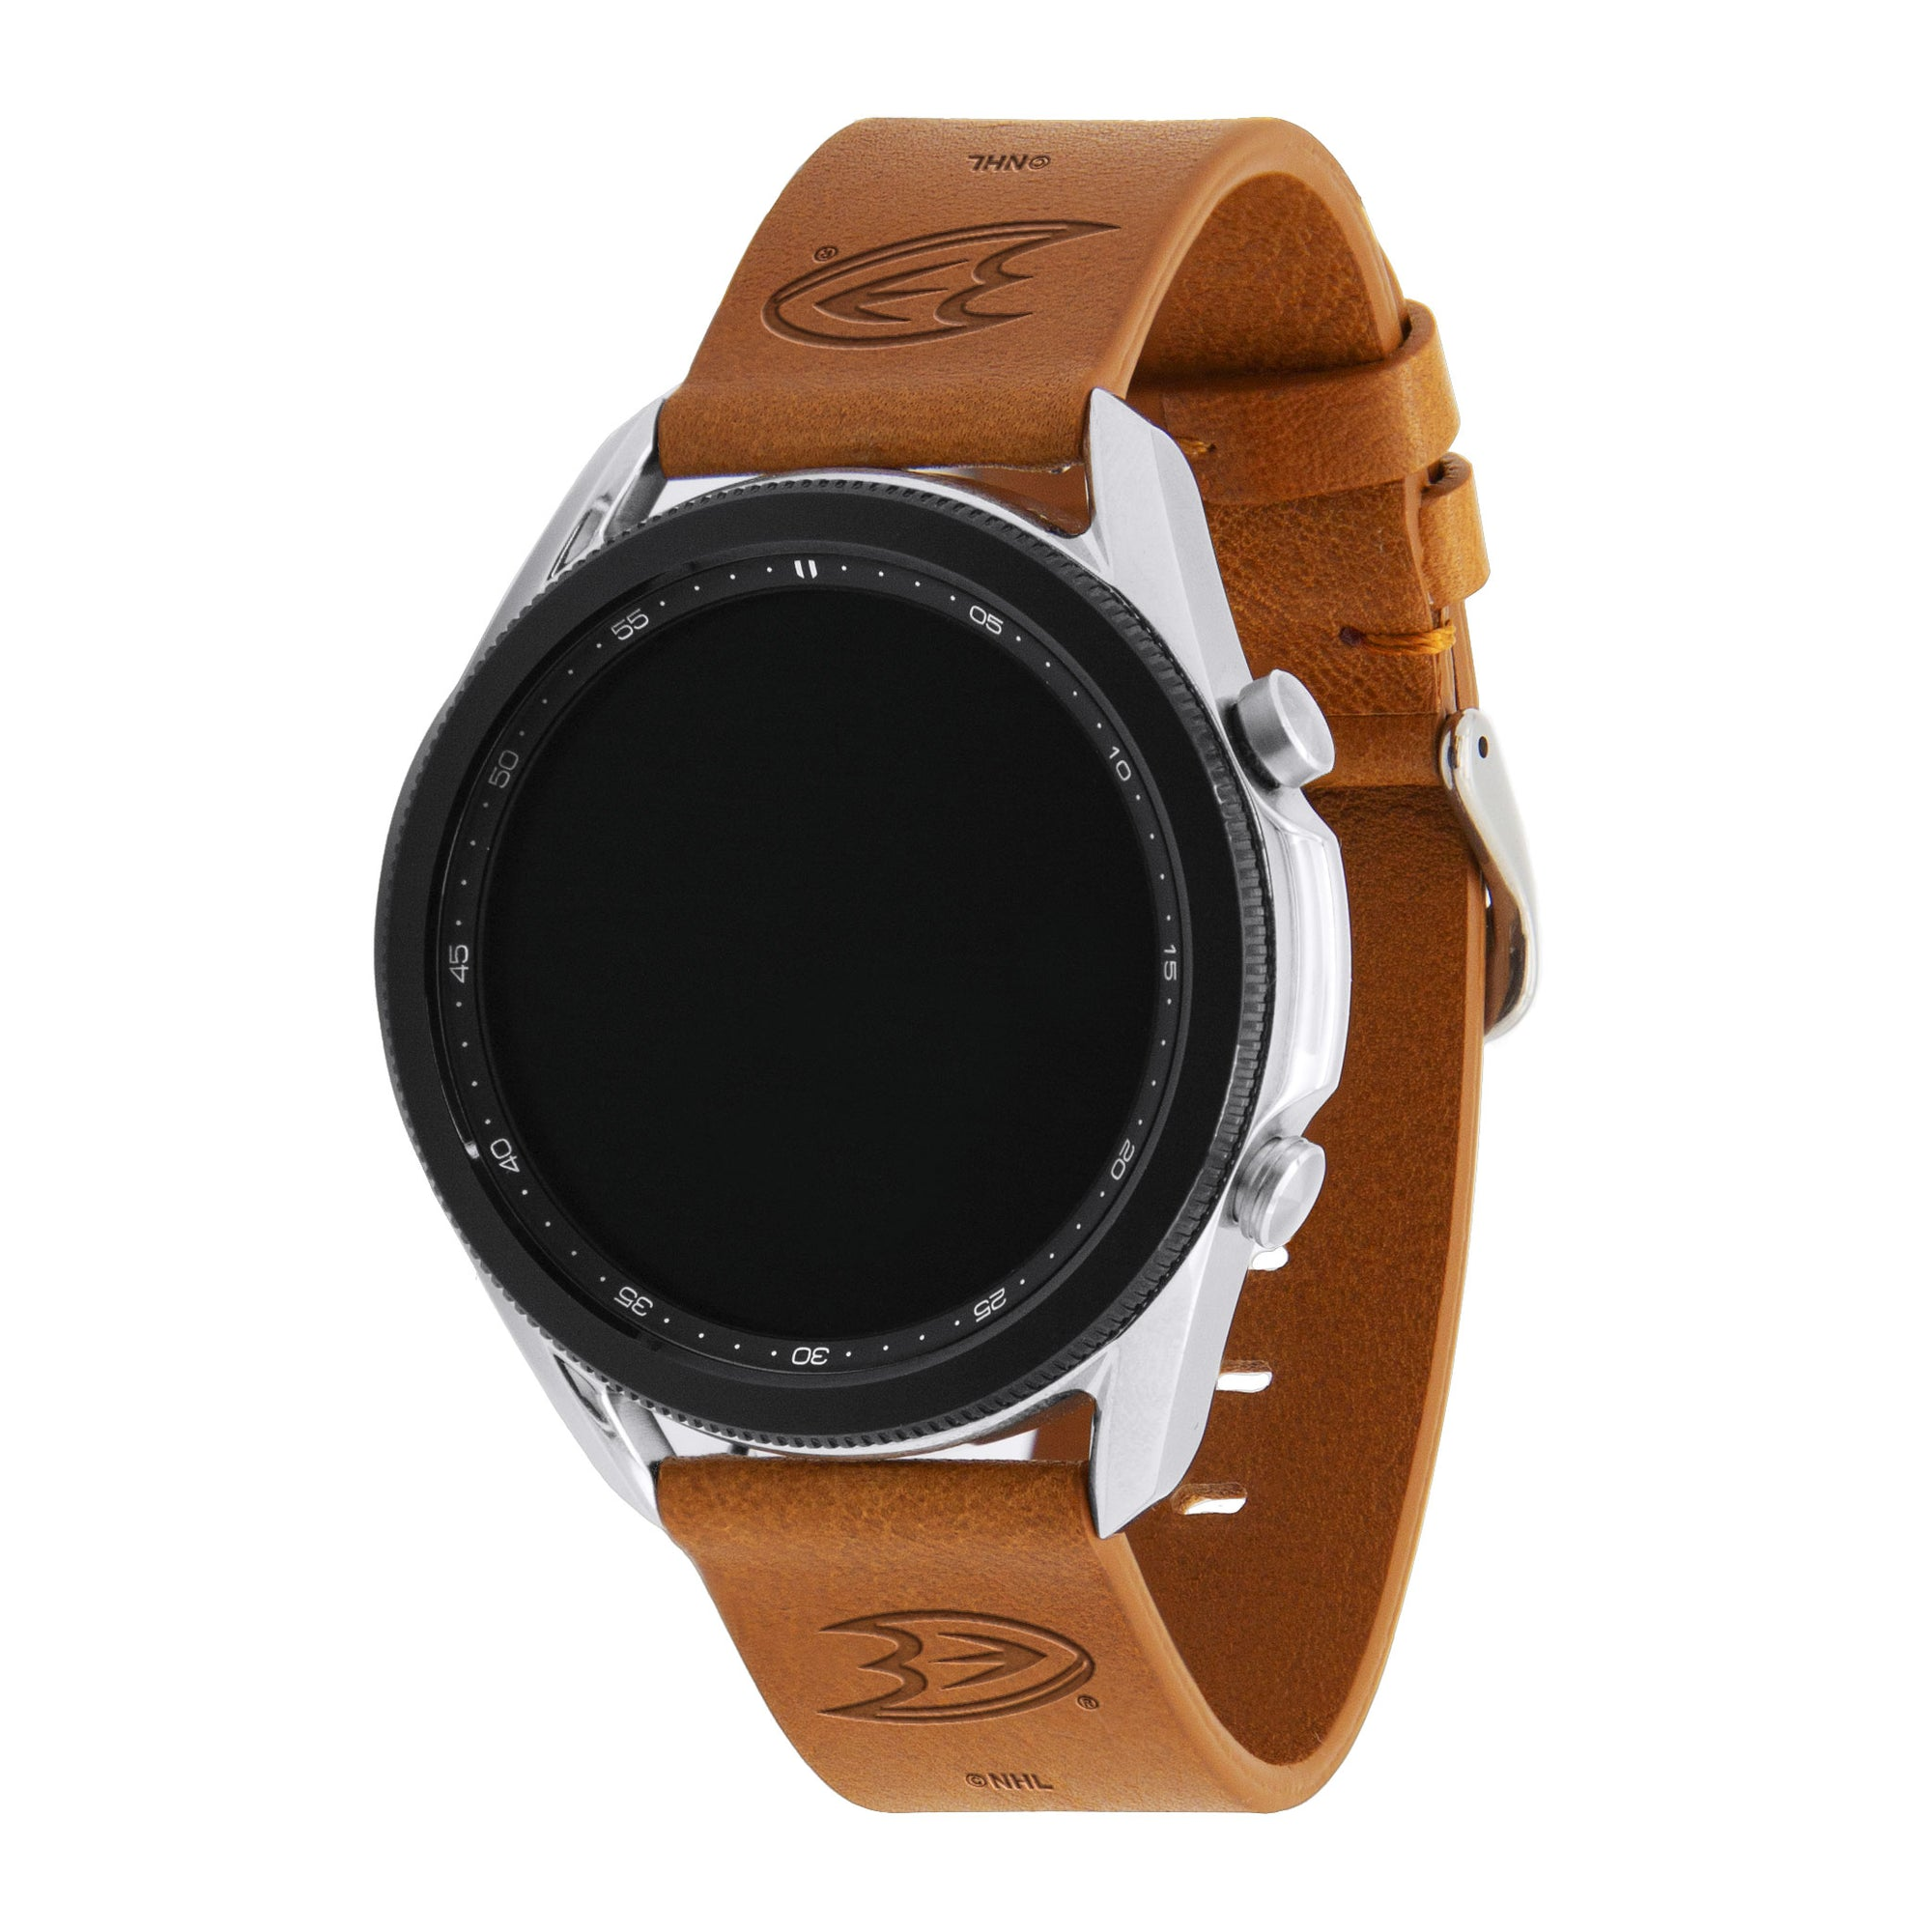 Anaheim Ducks Quick Change Leather Watch Band